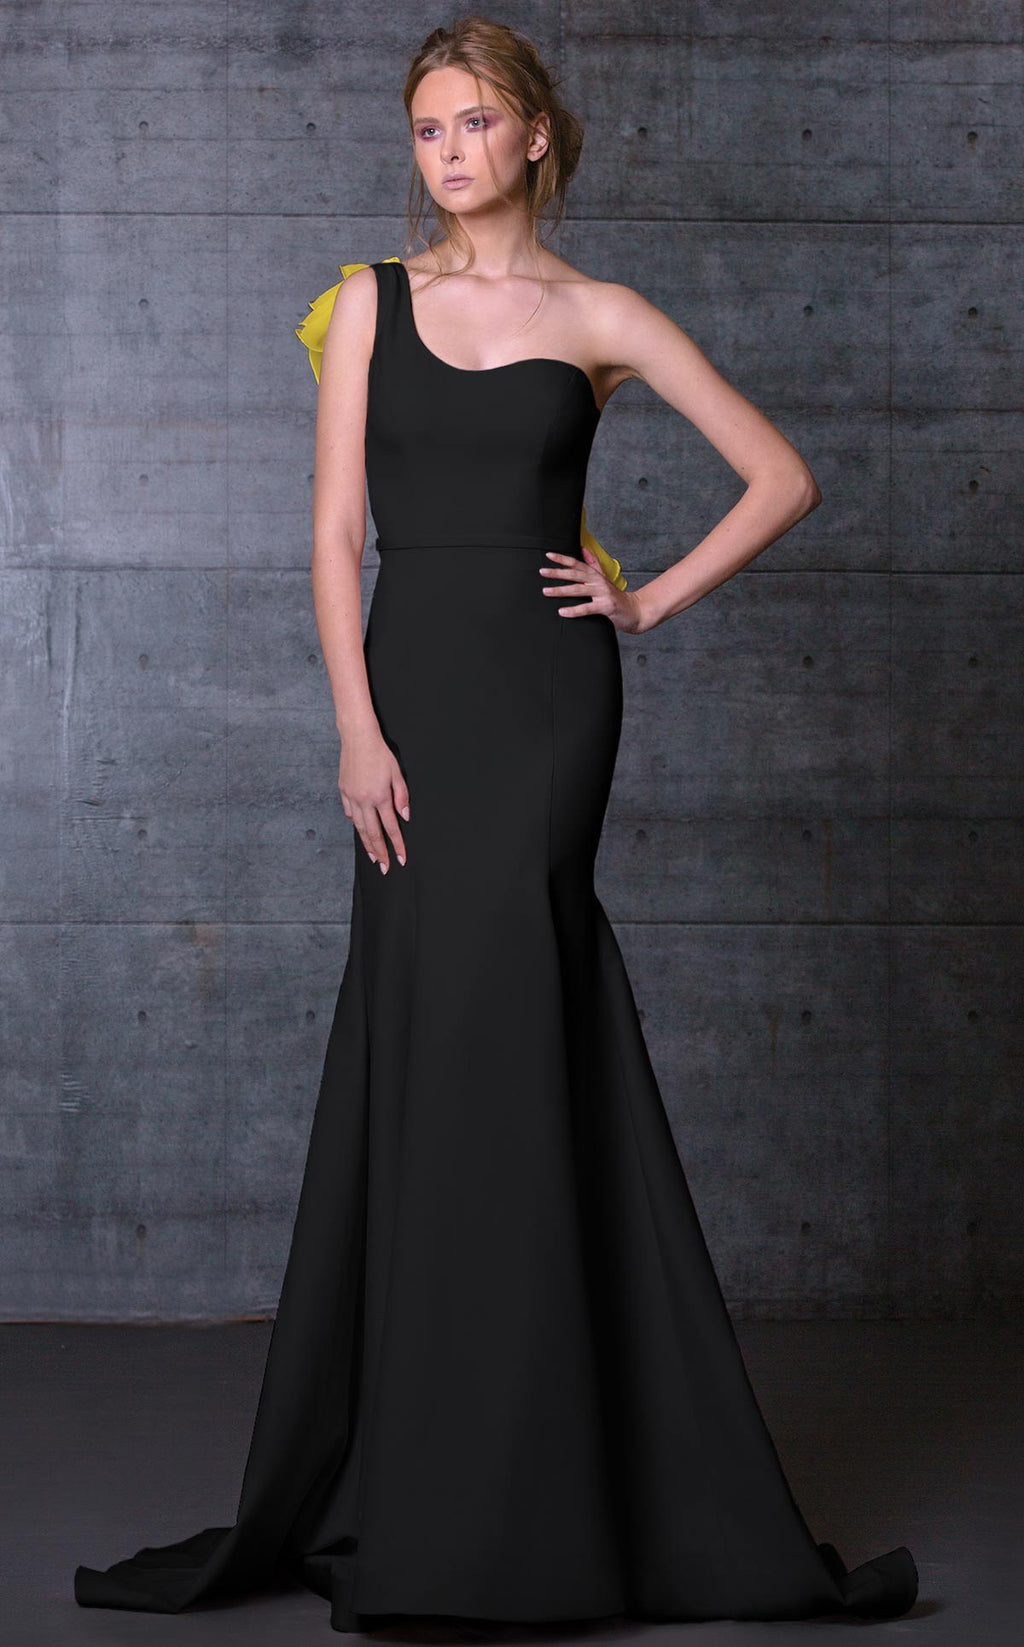 MNM Couture N0105 One Shouder Evening Dress - CYC Boutique